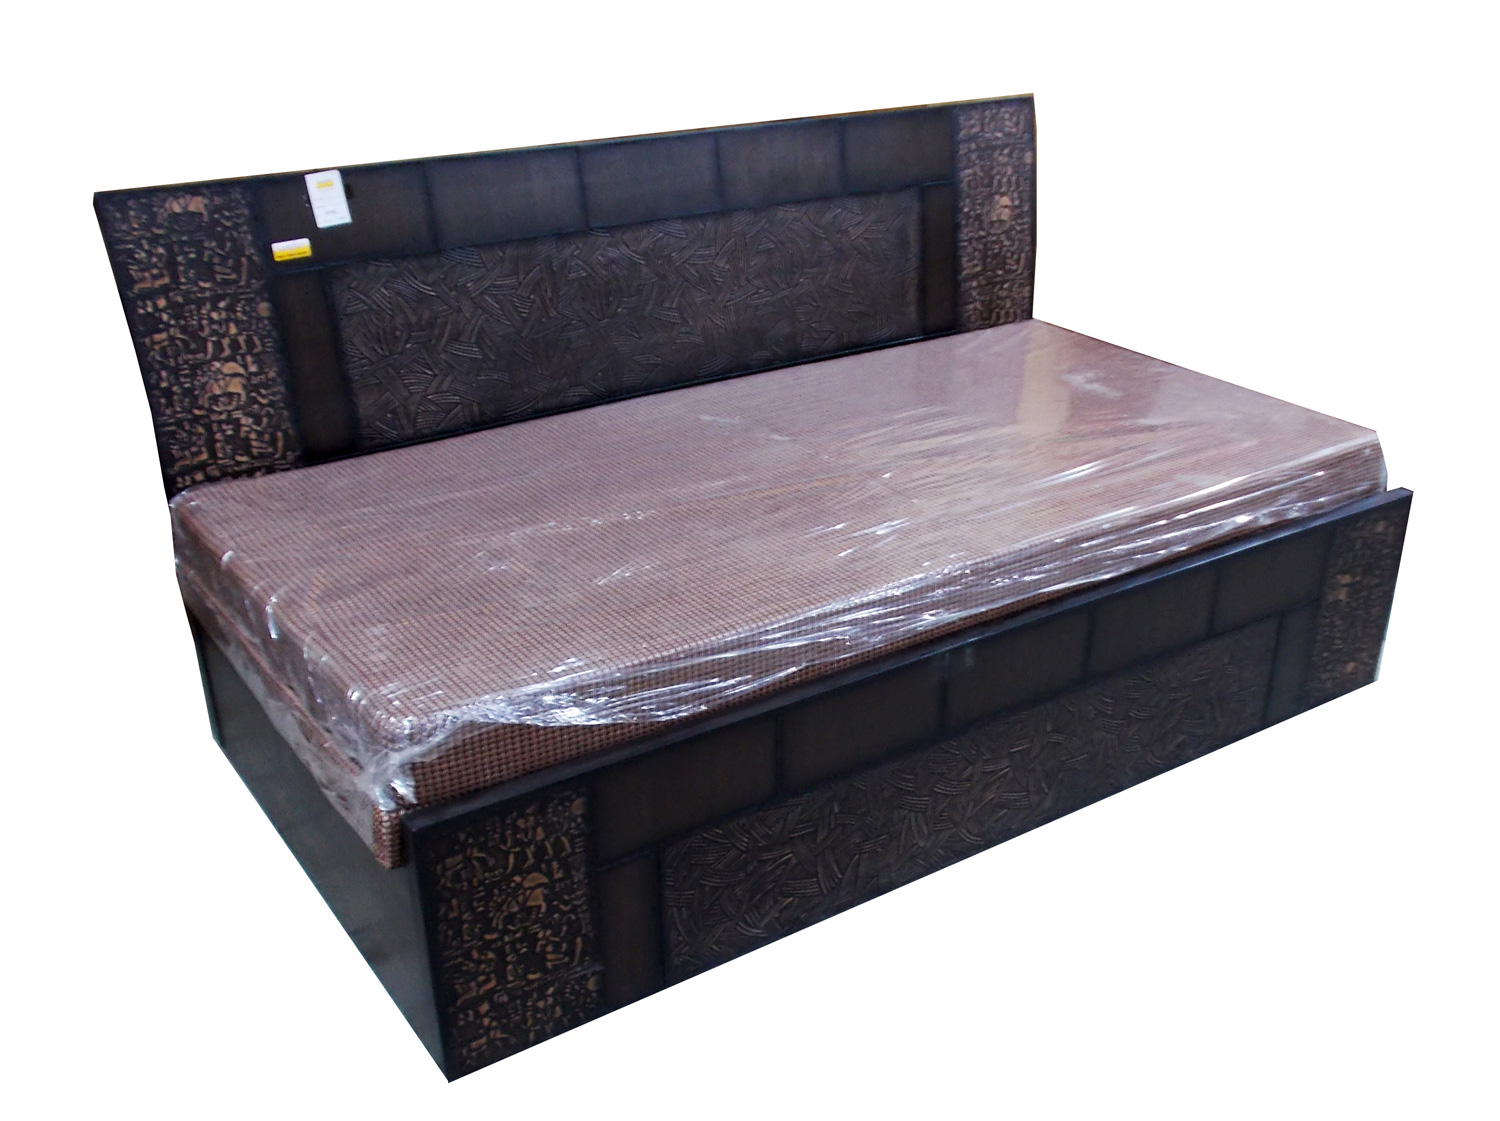 100 Used Double Bed Cot For Sale In Bangalore Latest Maharaja Diwan Sets Hybiz Tv Youtube